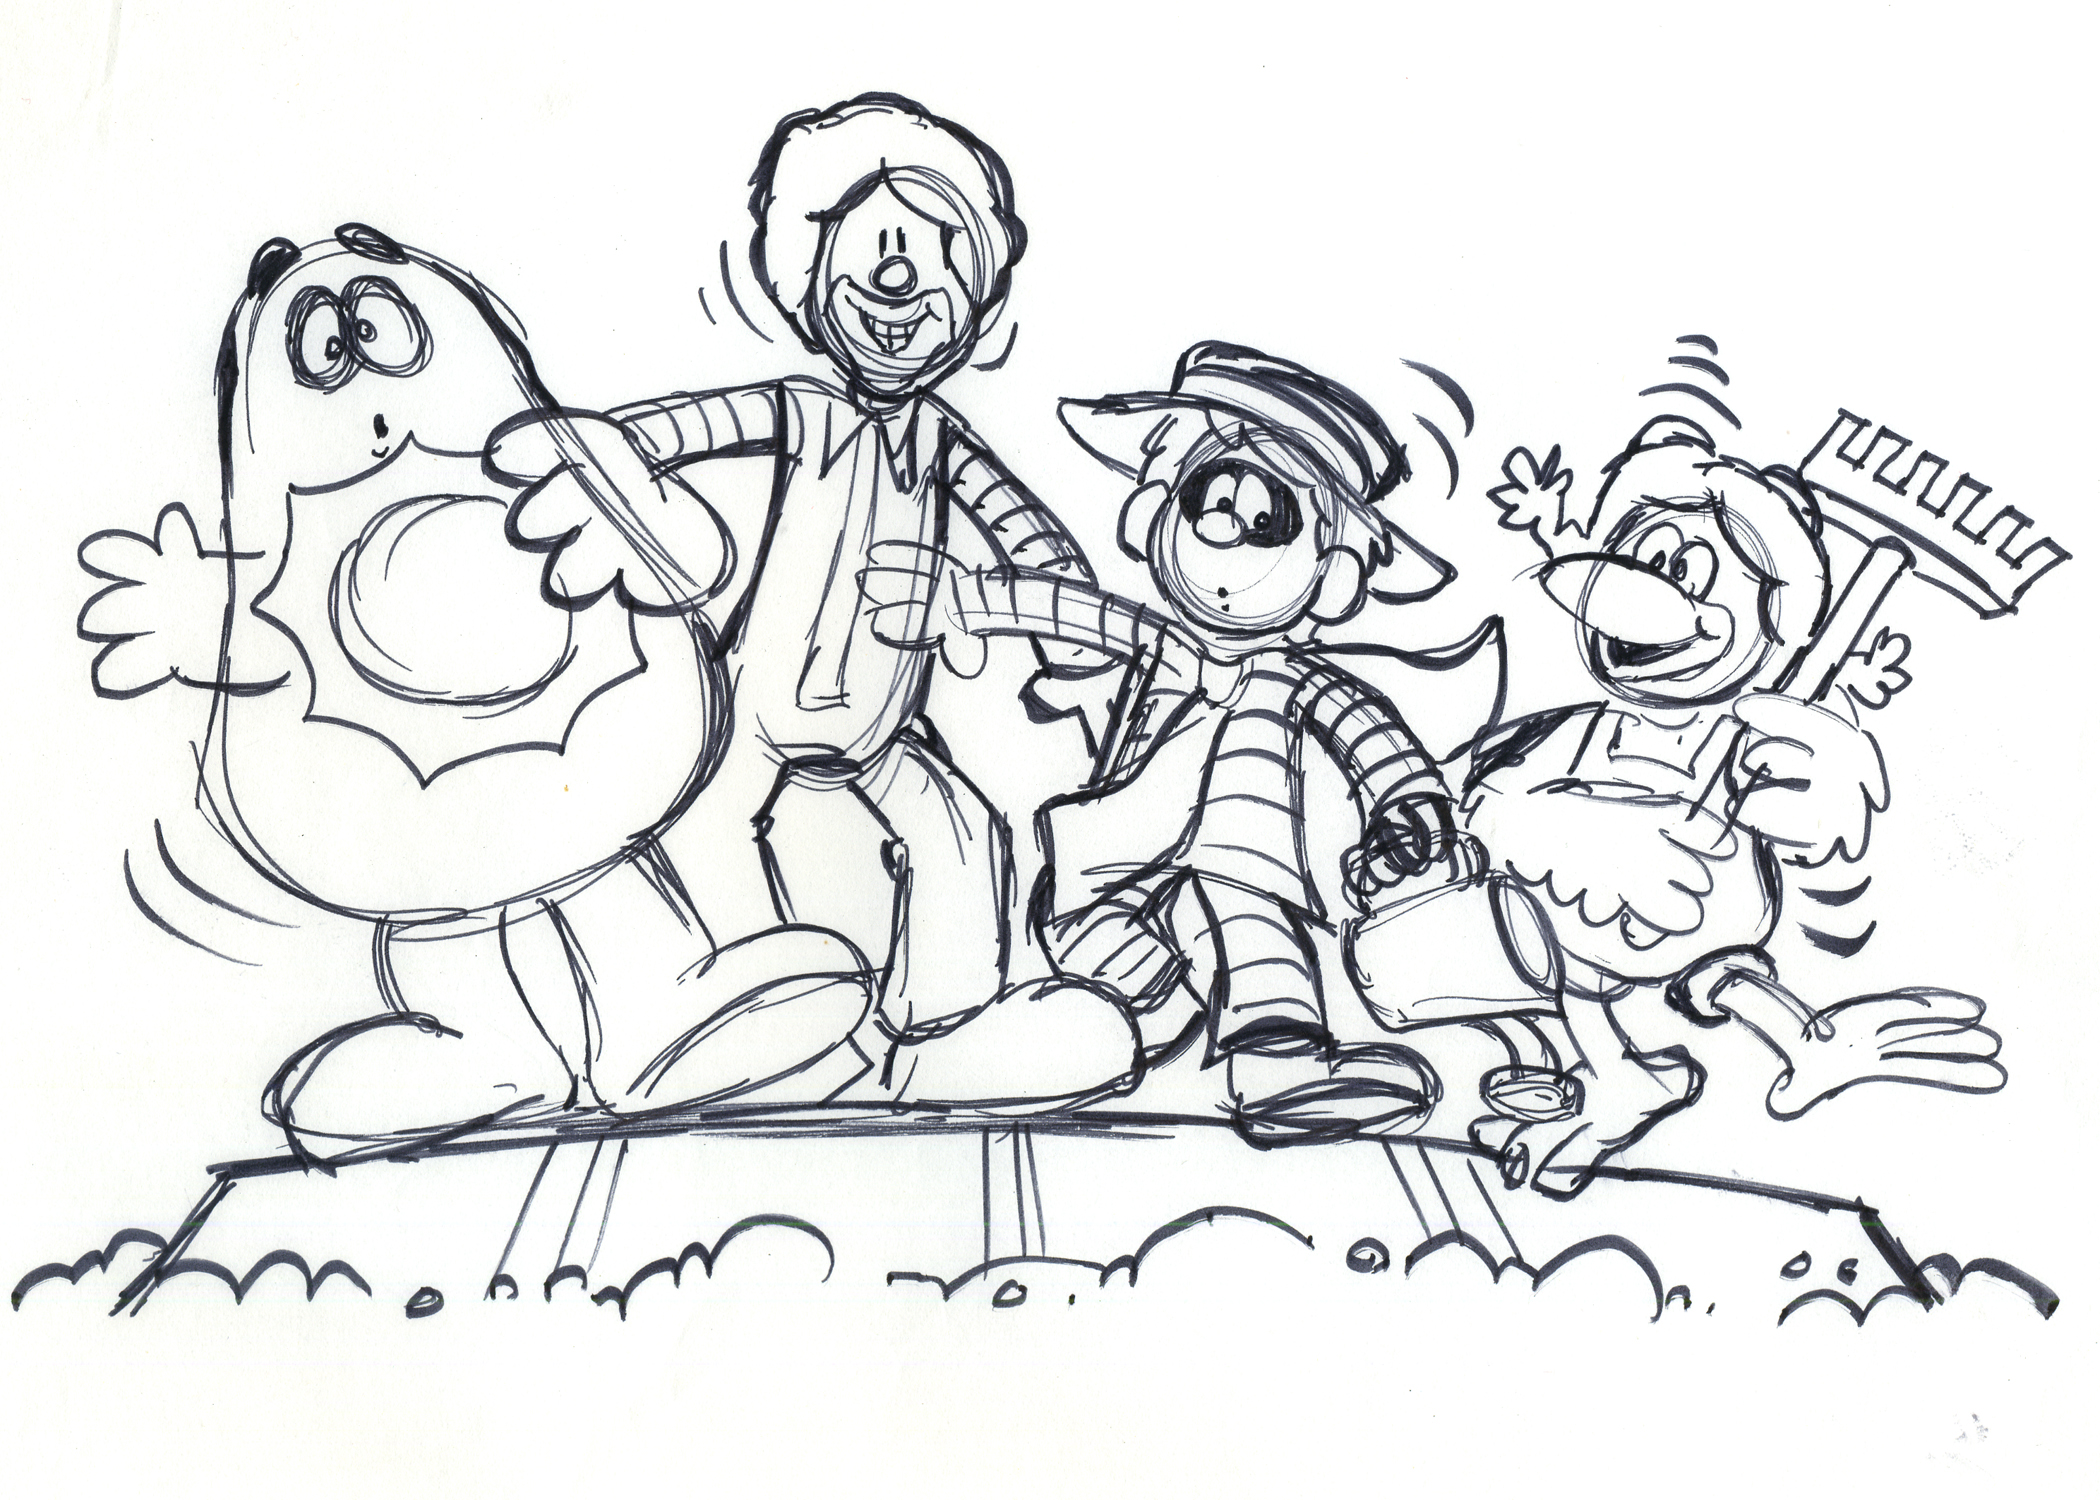 2100x1500 Rough Storyboard Drawing For An International Commercial Called